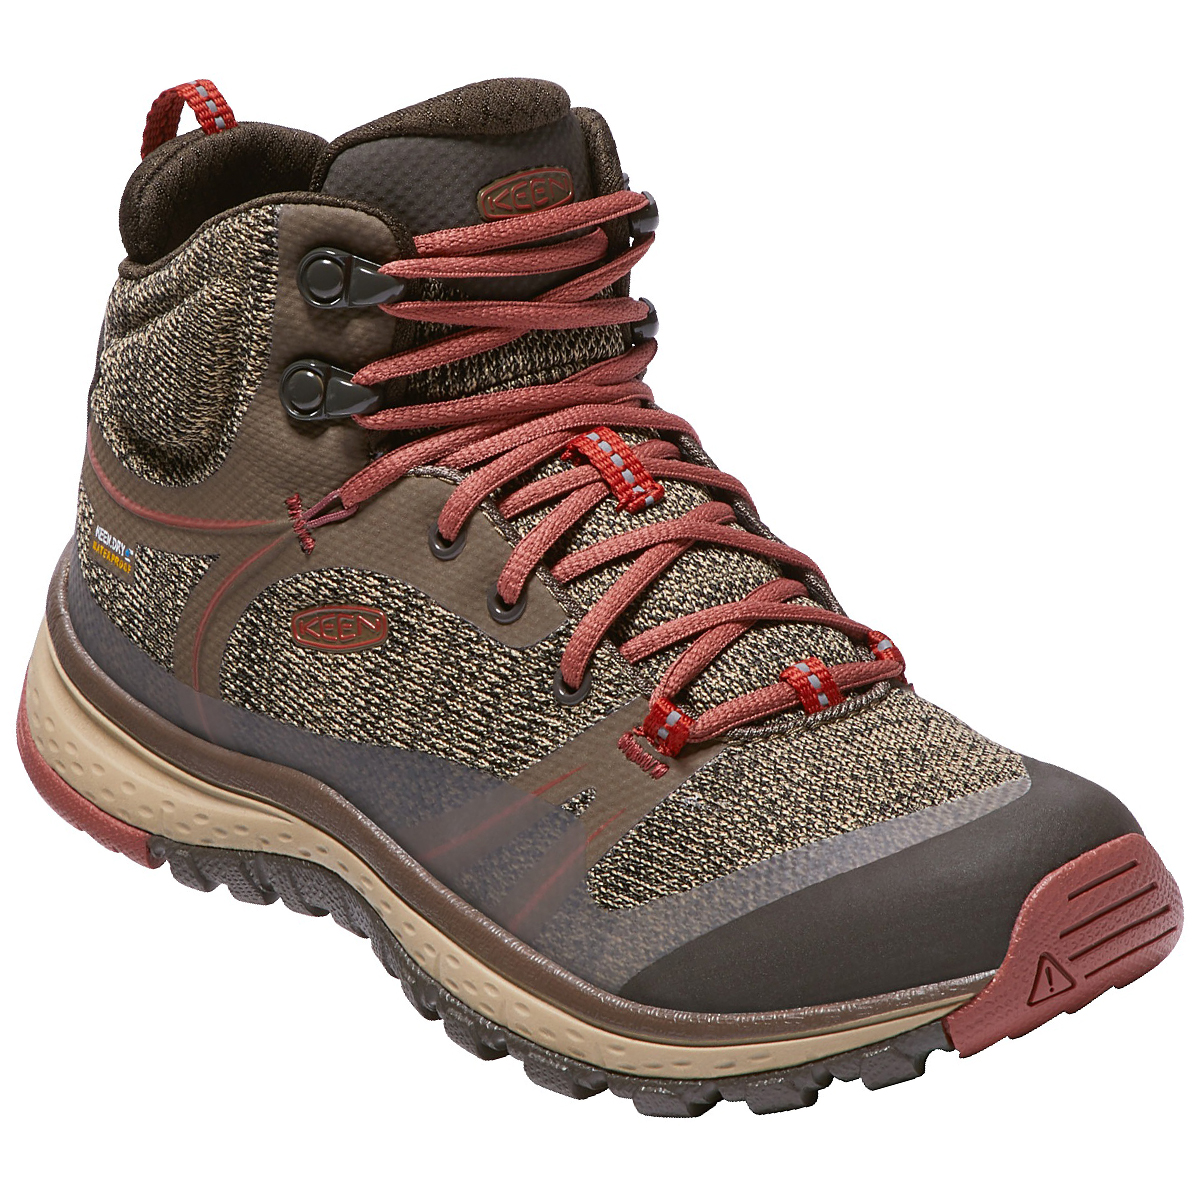 Keen Women's Terradora Waterproof Mid Hiking Boots - Brown, 8